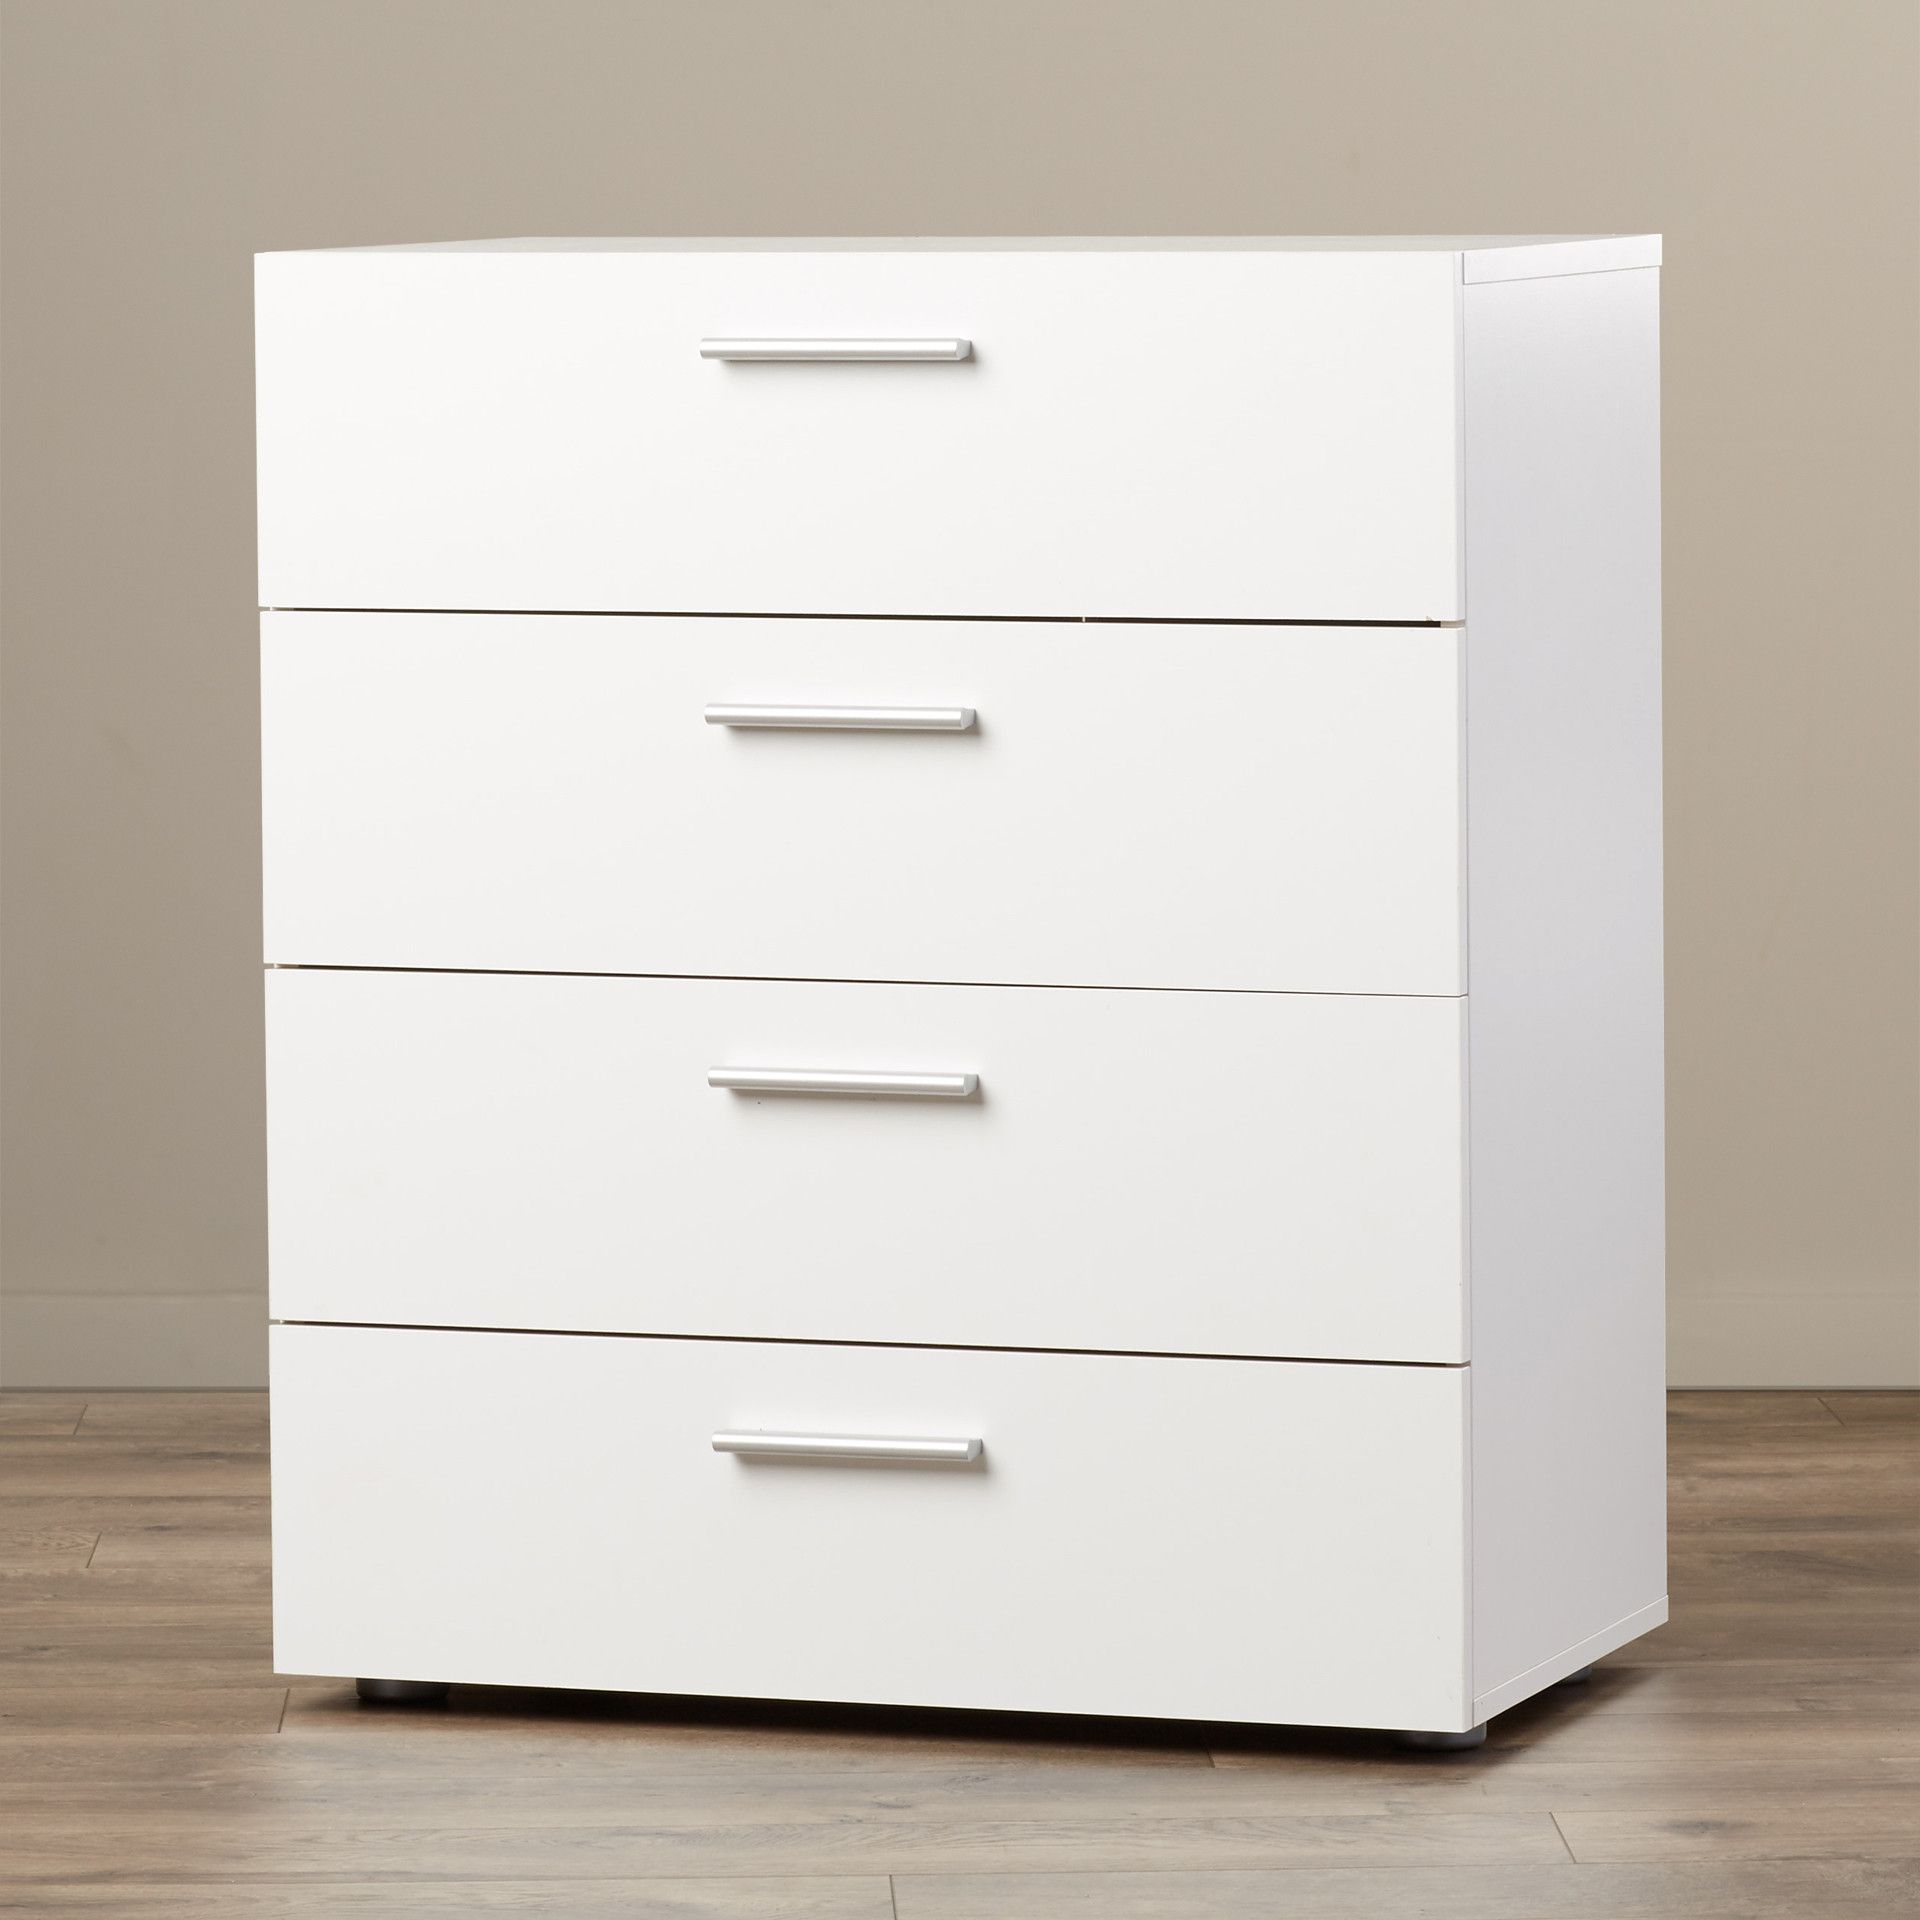 Lopiccolo Bedroom 4 Drawer Dresser Chest Of Drawers Drawers White Beadboard [ 1920 x 1920 Pixel ]